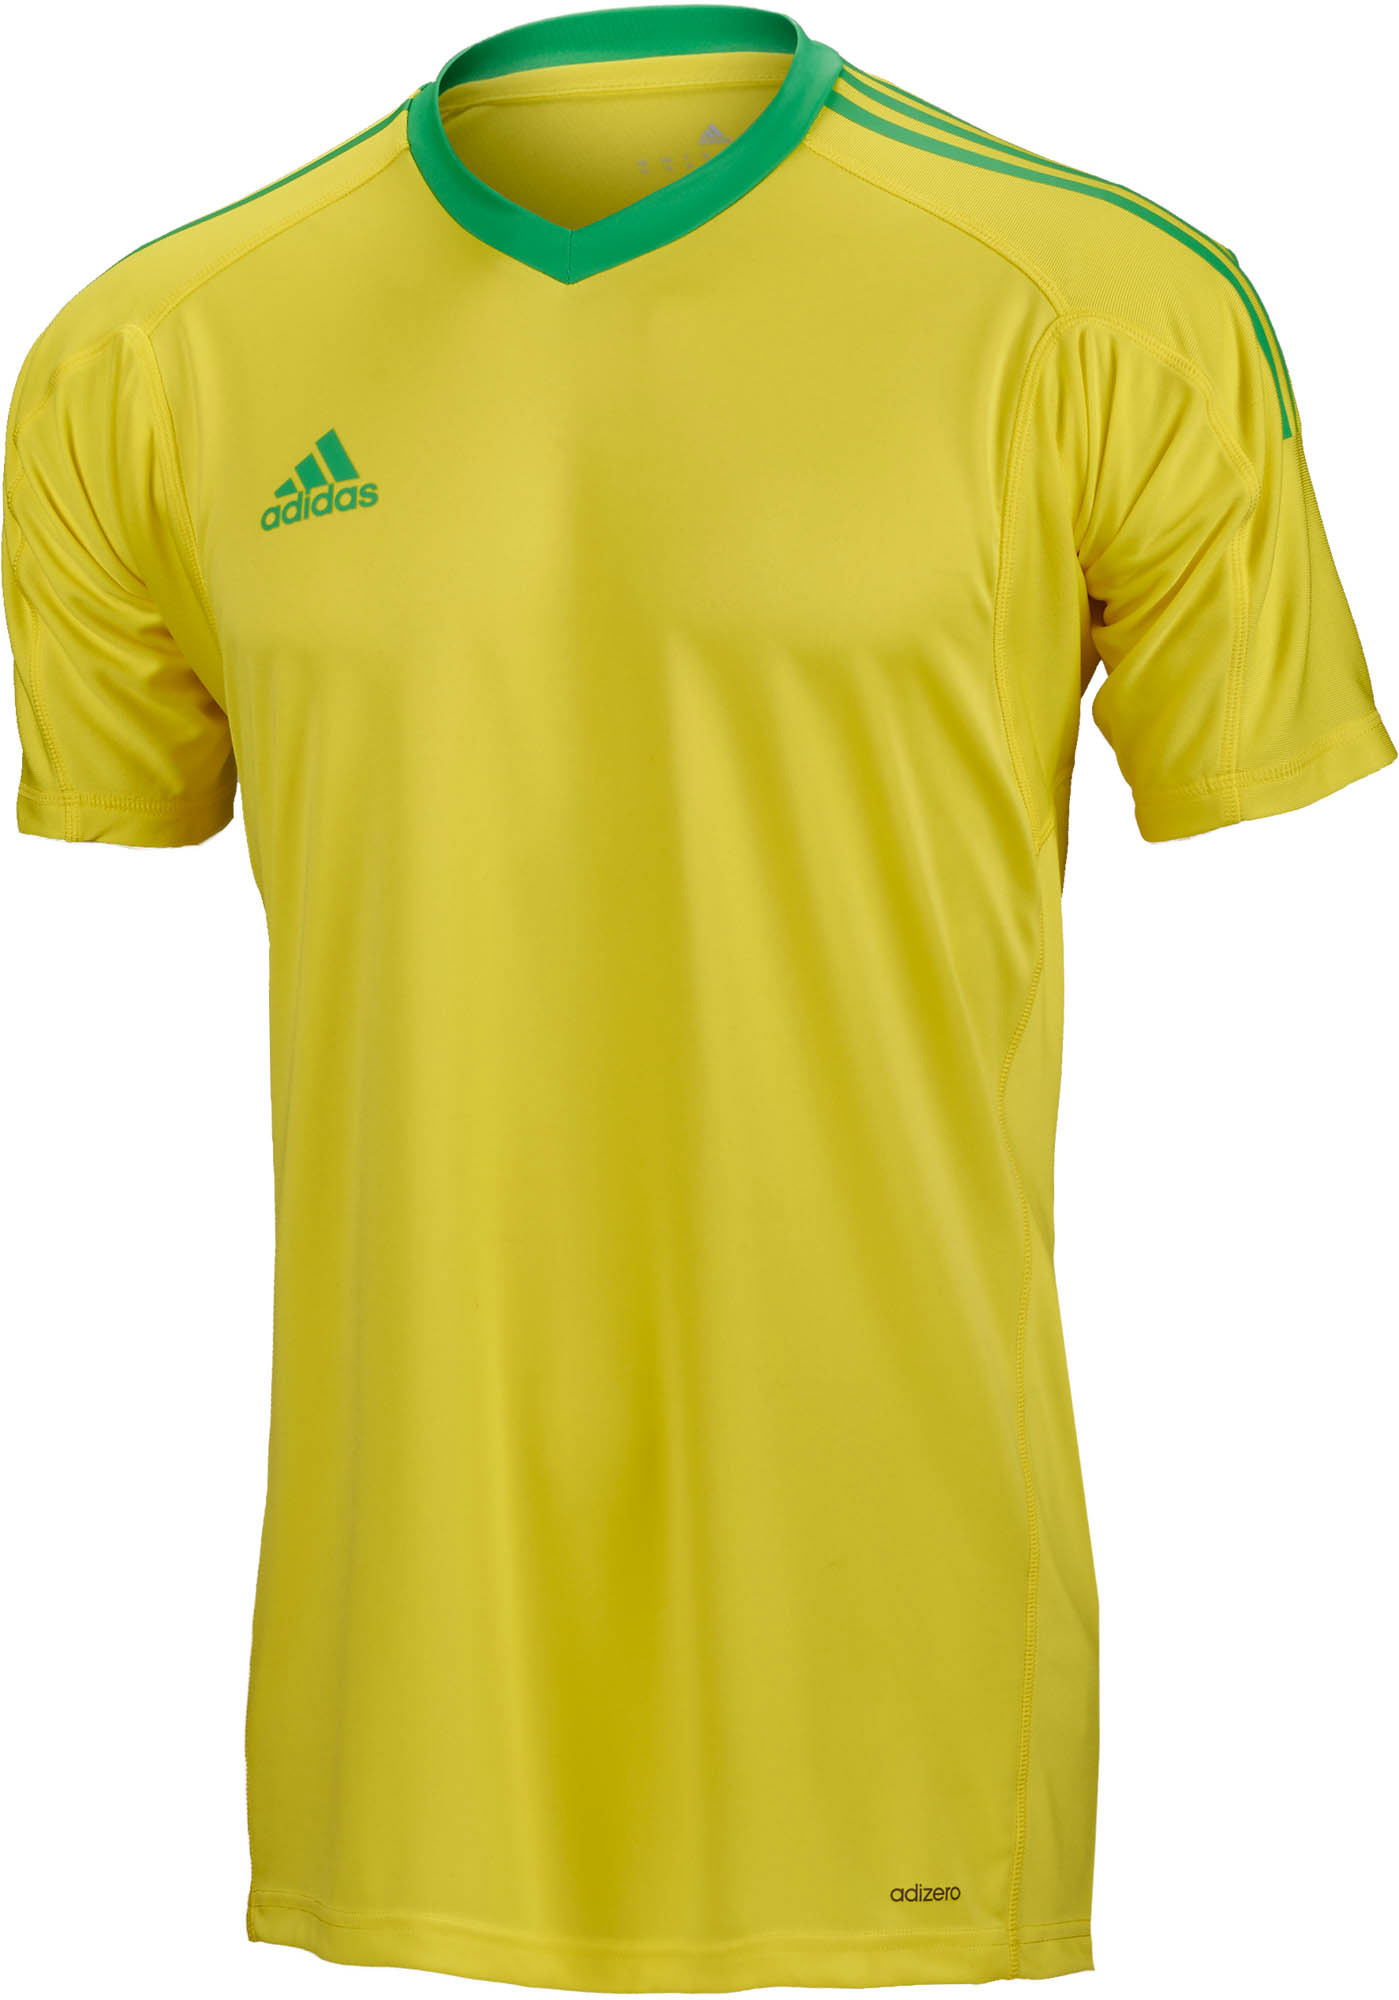 adidas Boy/'s Go To Short Sleeve T-Shirt NWT Neon Green or Neon Yellow  Size  4